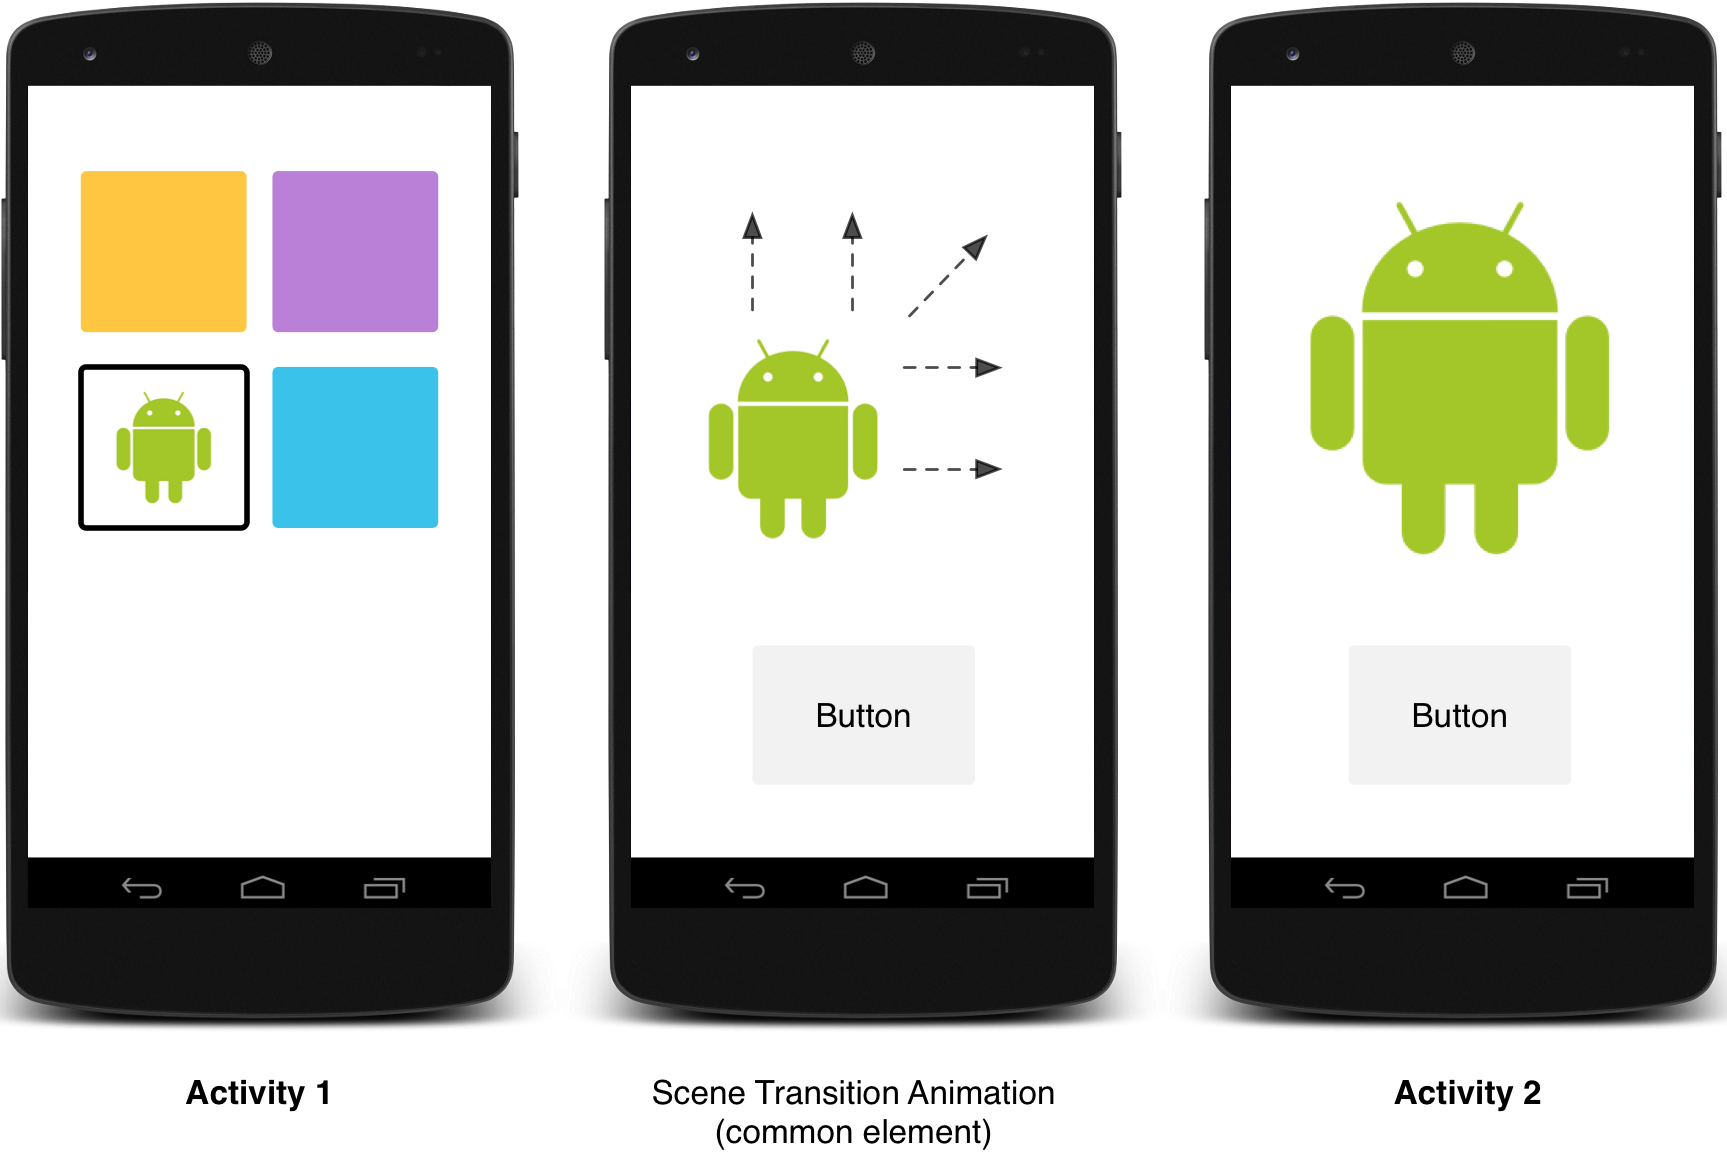 Start an activity using an animation | Android Developers